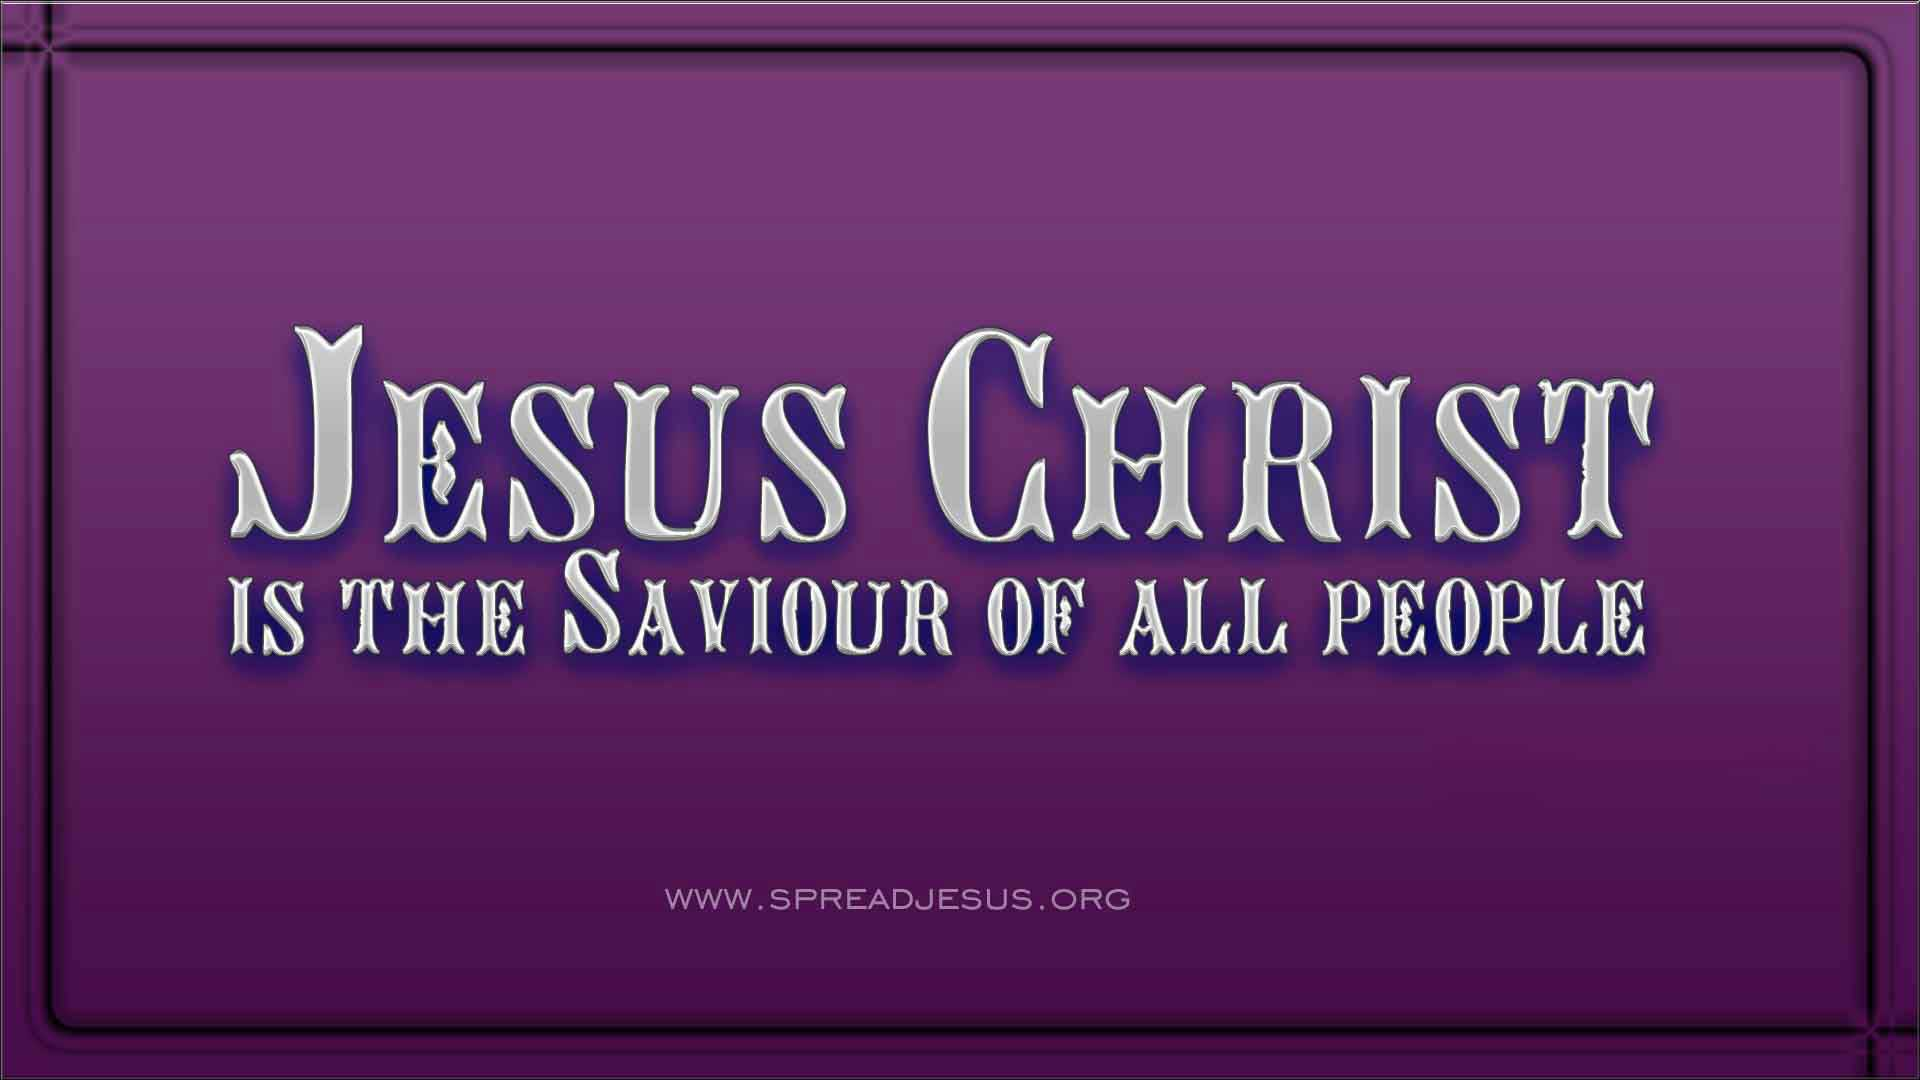 Hd Bible Quotes Wallpapers Jesus Christ Hd Wallpapers Pack 1 Jesus Christ Is The